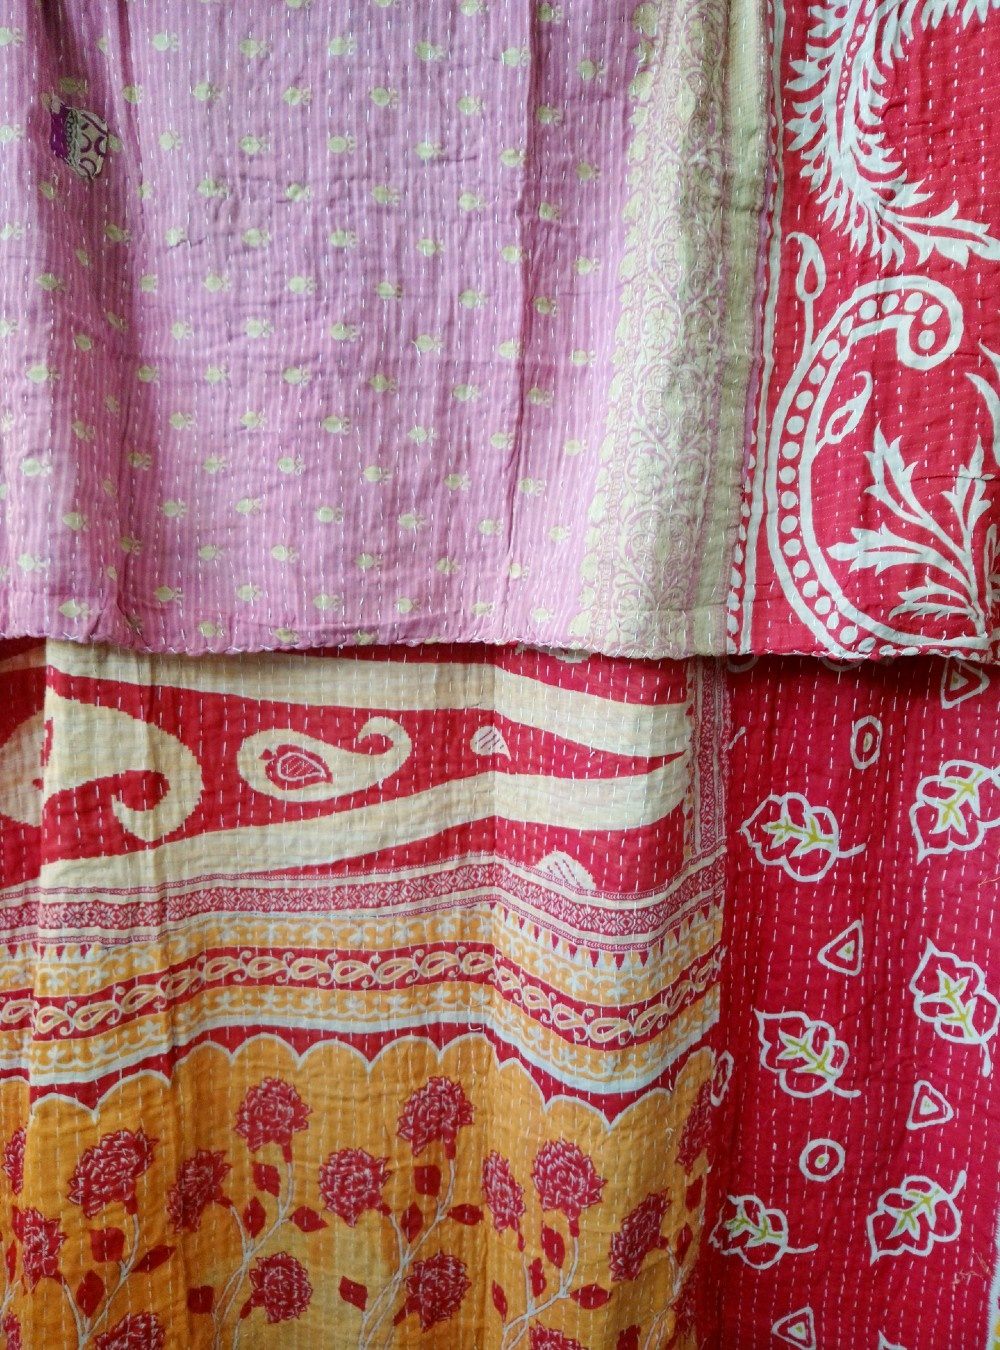 Kantha Sari Throw Blanket #537